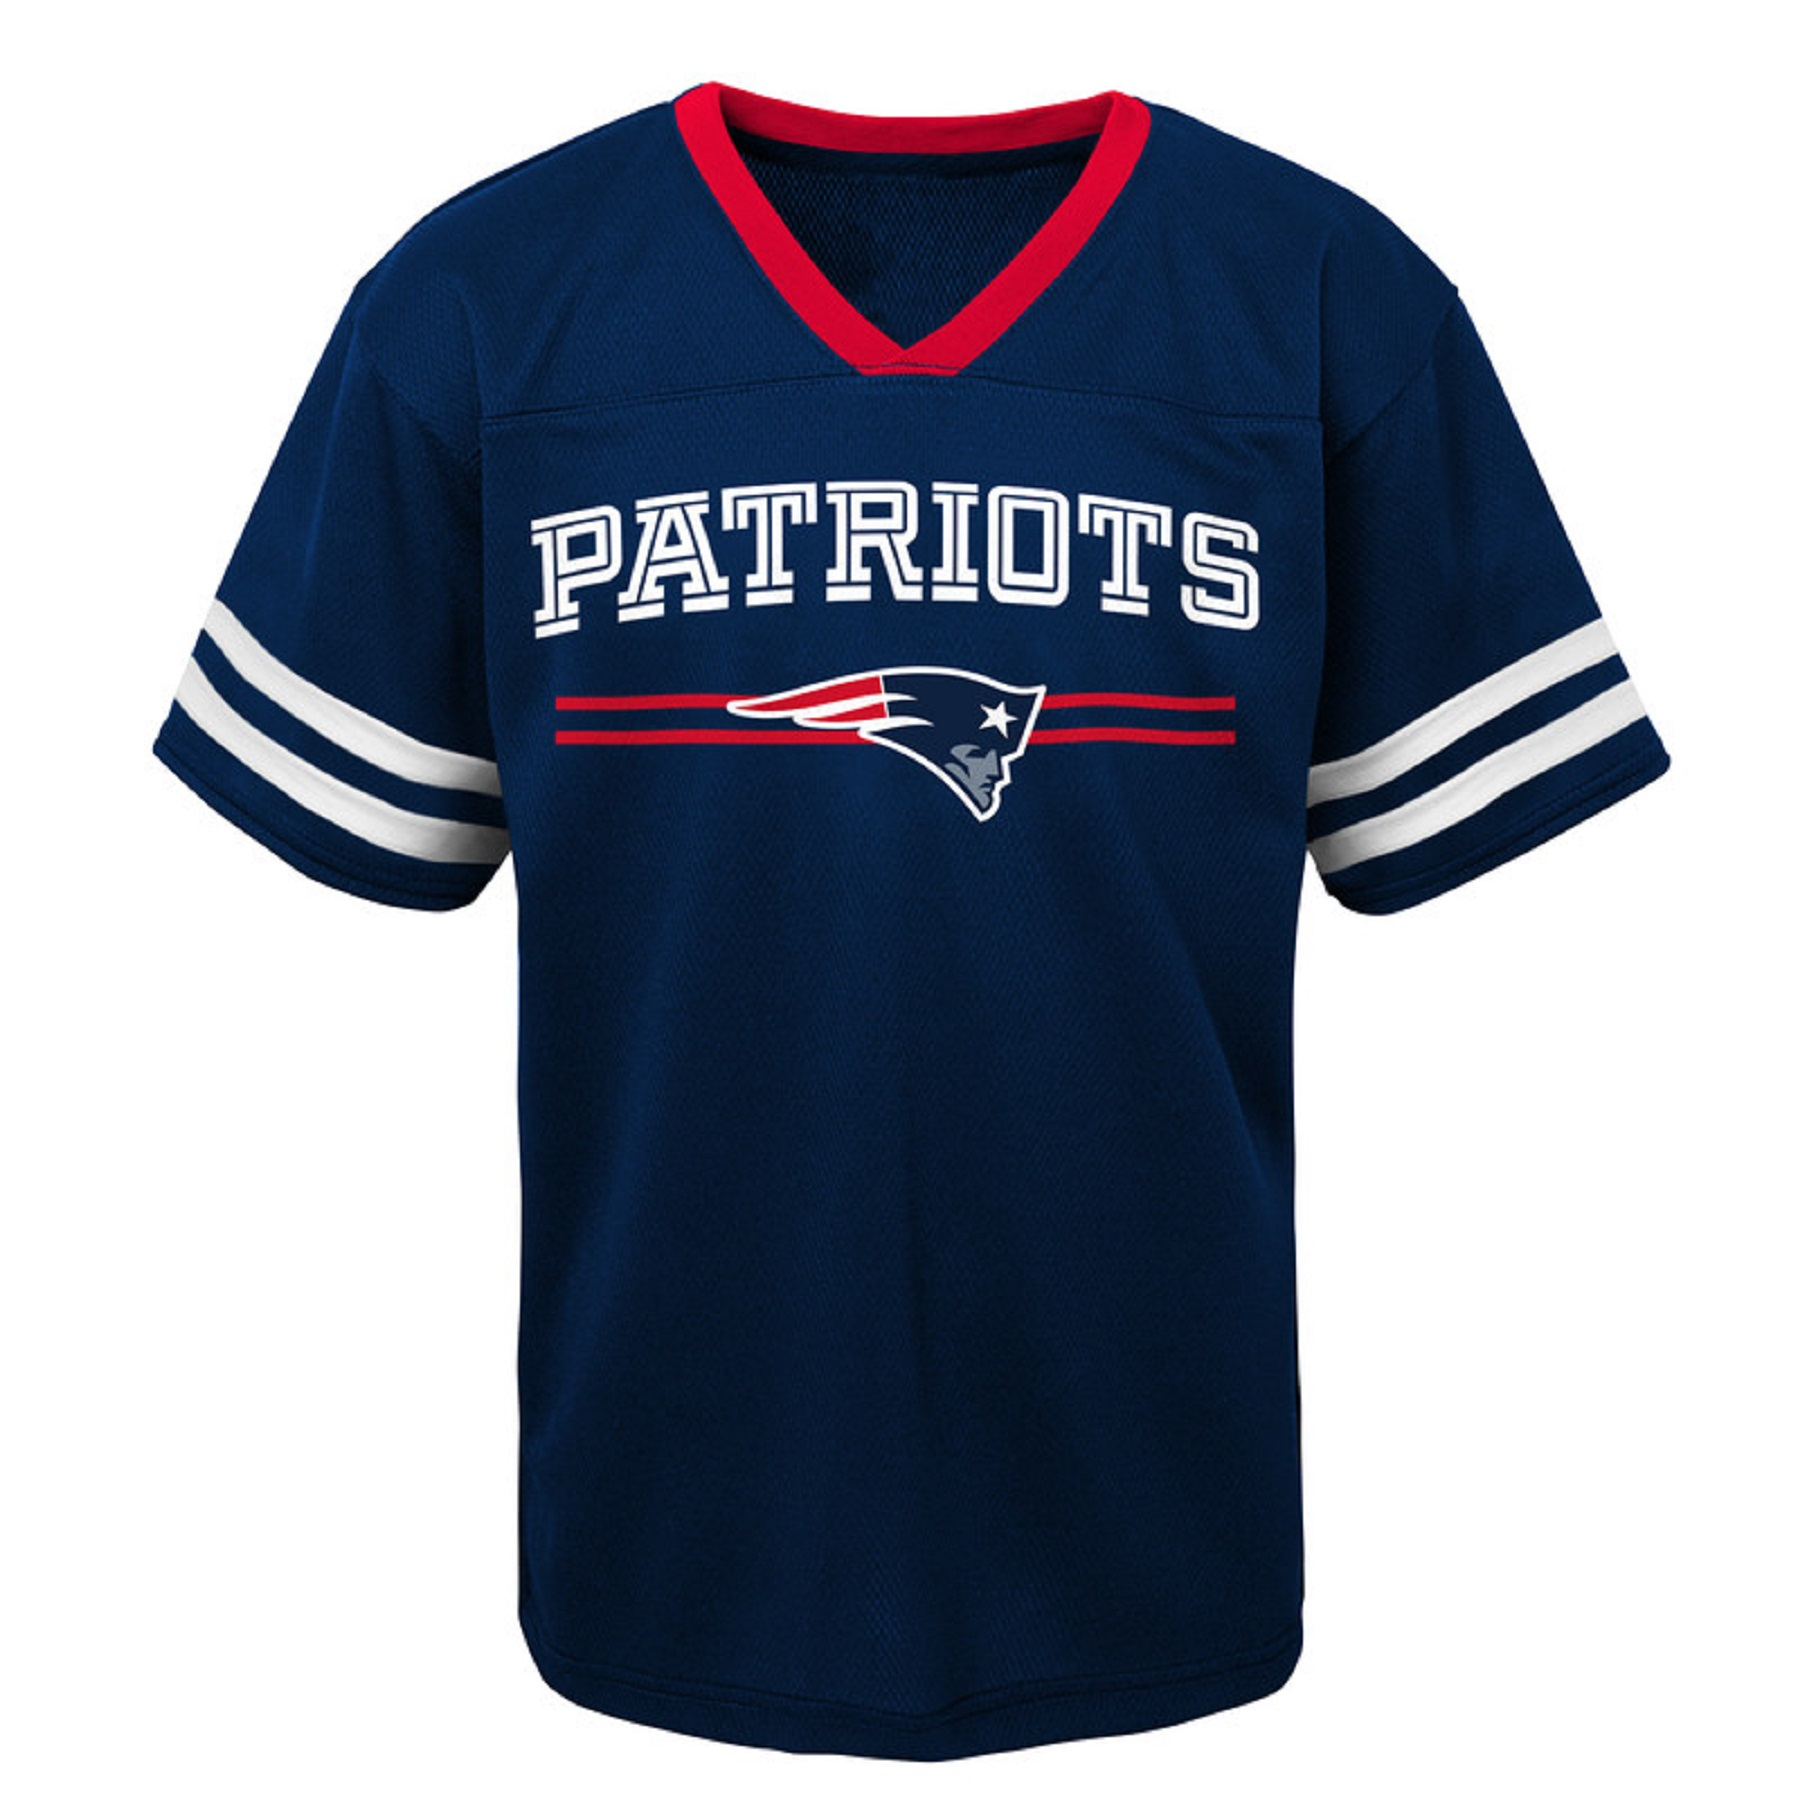 Youth Navy New England Patriots Mesh V-Neck T-Shirt